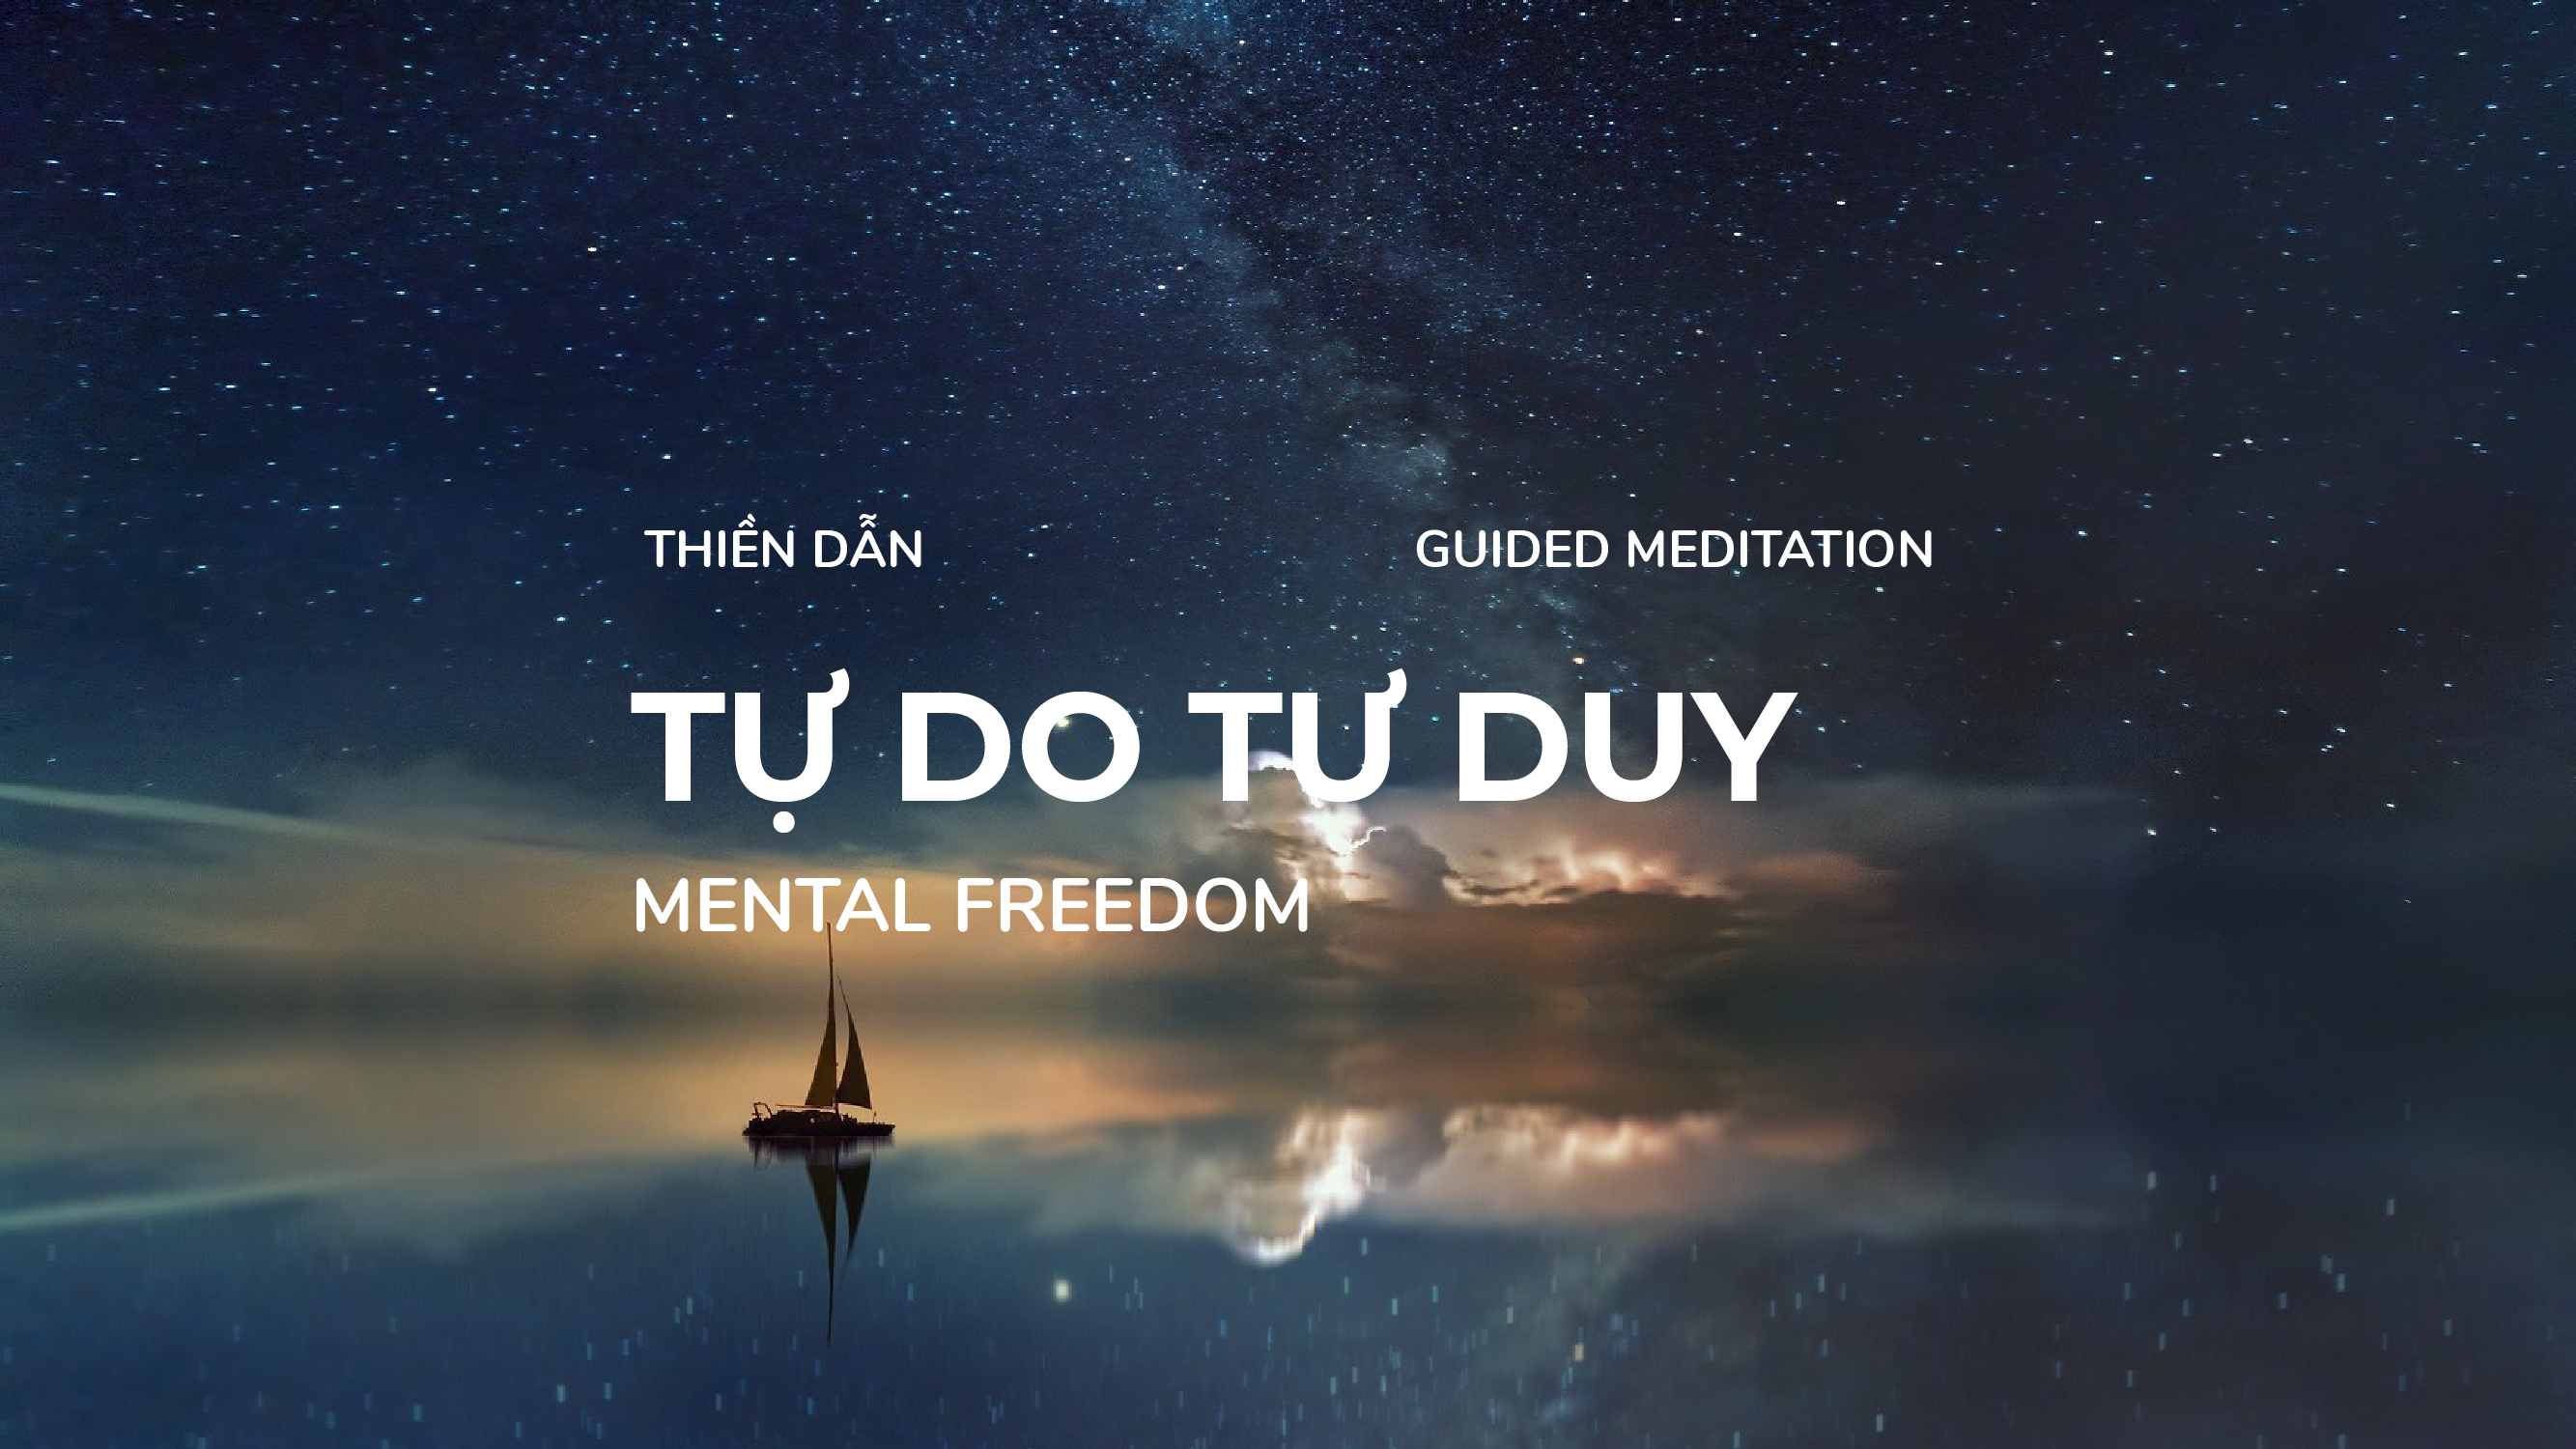 Guided Meditation – Mental freedom – 14 Minutes